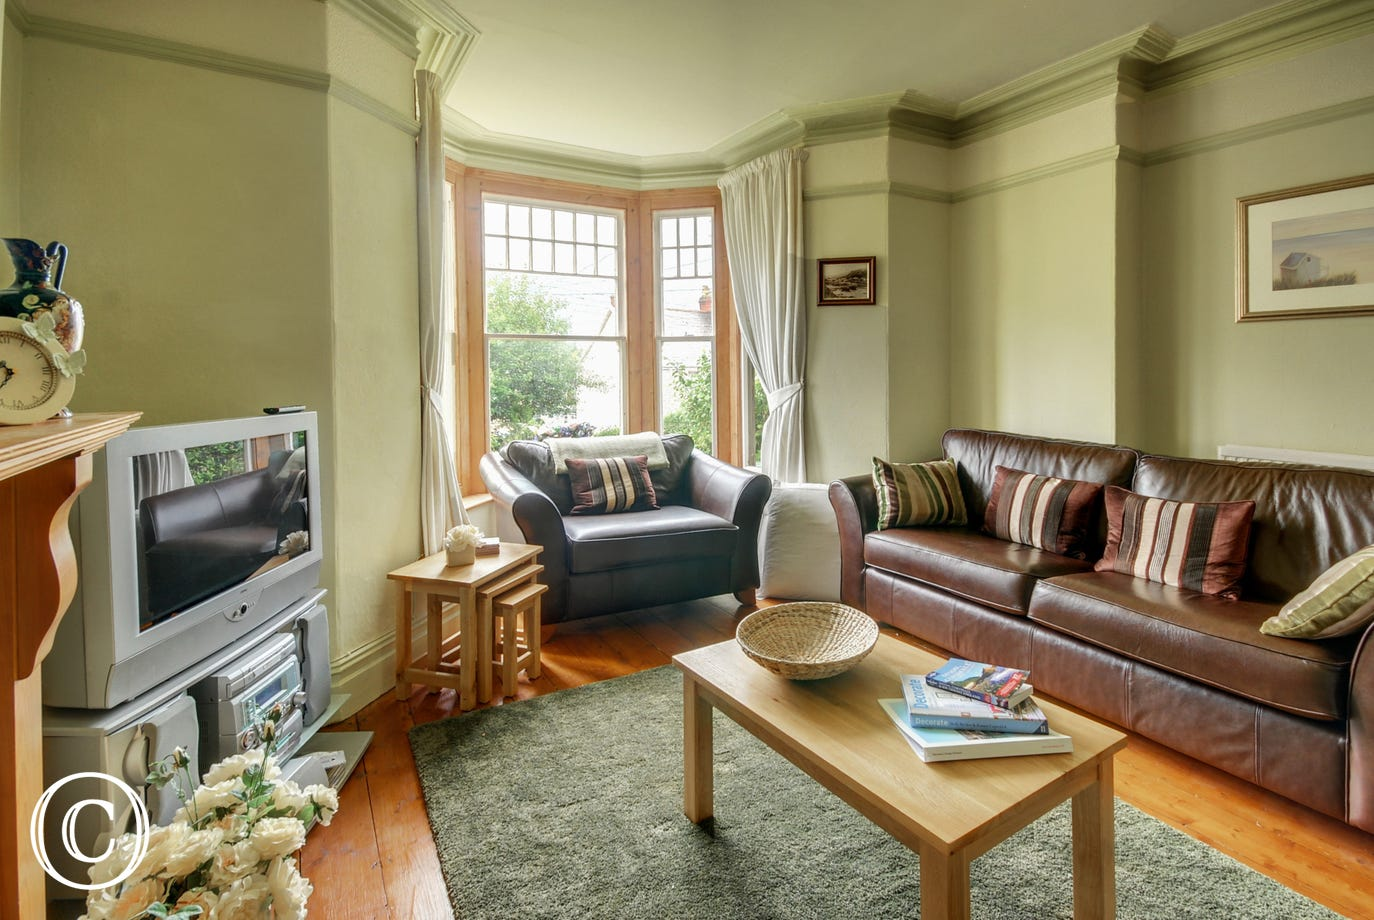 One of the sitting rooms with TV, leather sofas and fireplace